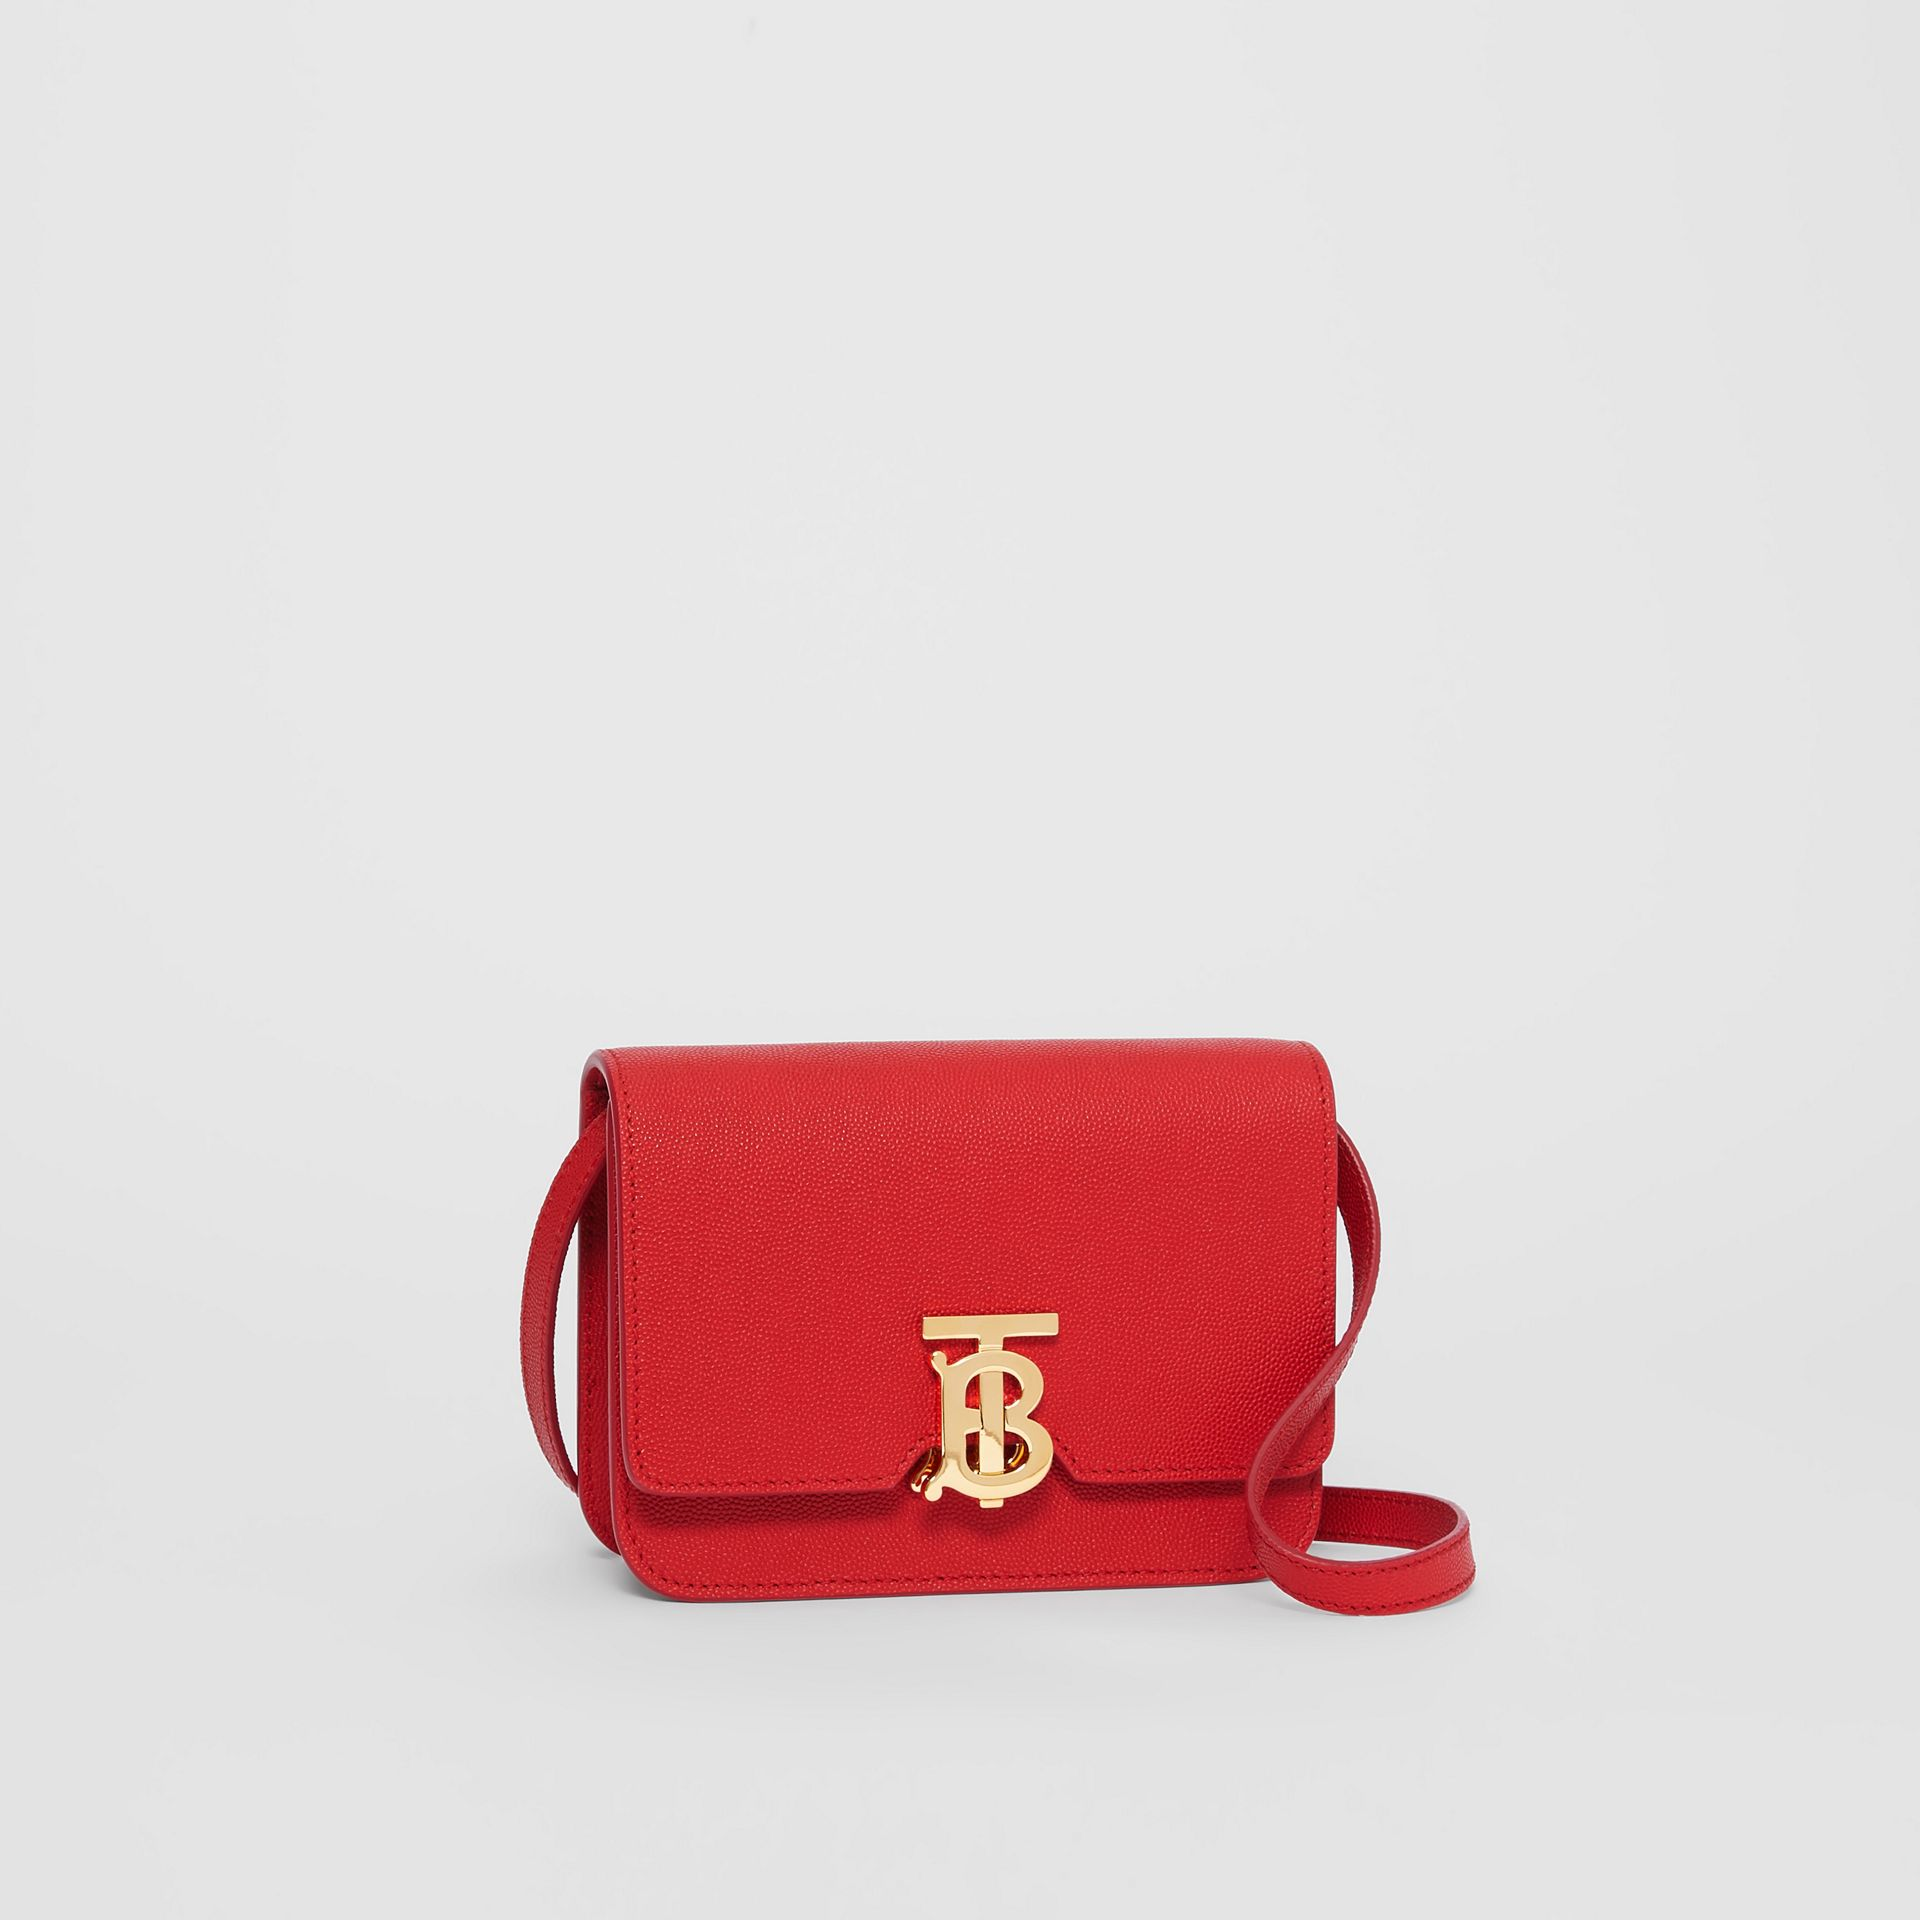 Mini Grainy Leather TB Bag in Bright Red - Women | Burberry Canada - gallery image 6